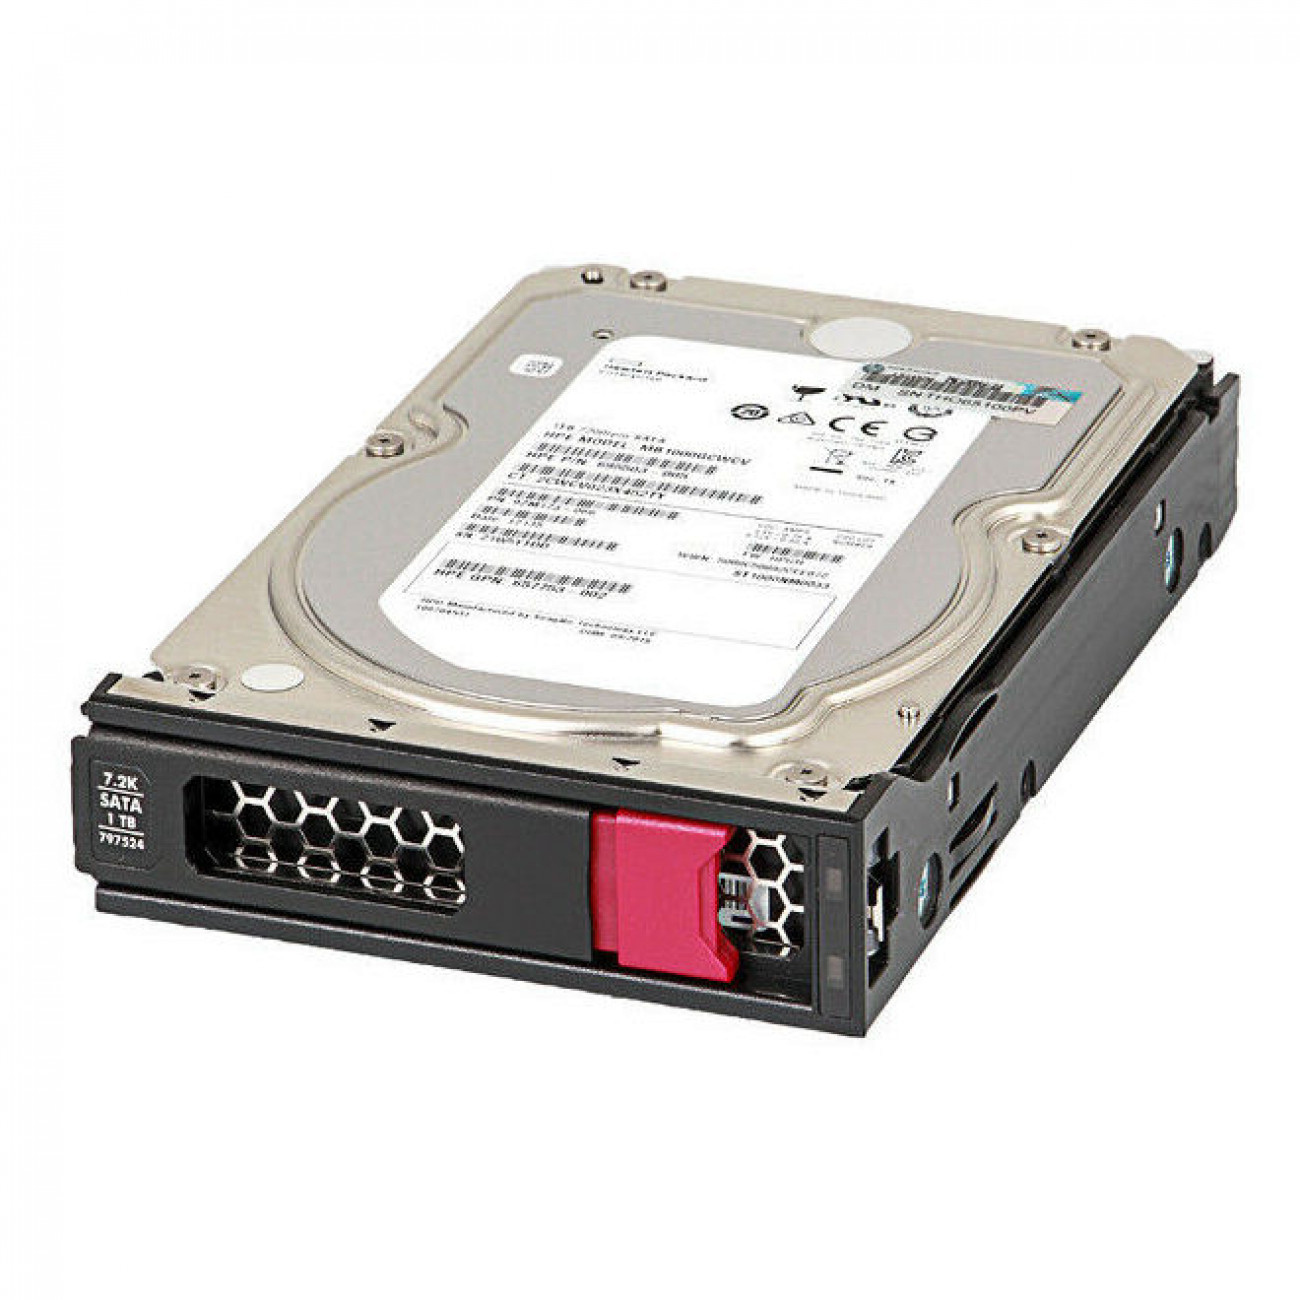 HPE 2TB SATA 6G Midline 7.2K LFF (3.5in) LP 1yr Wty Digitally Signed Firmware HDD